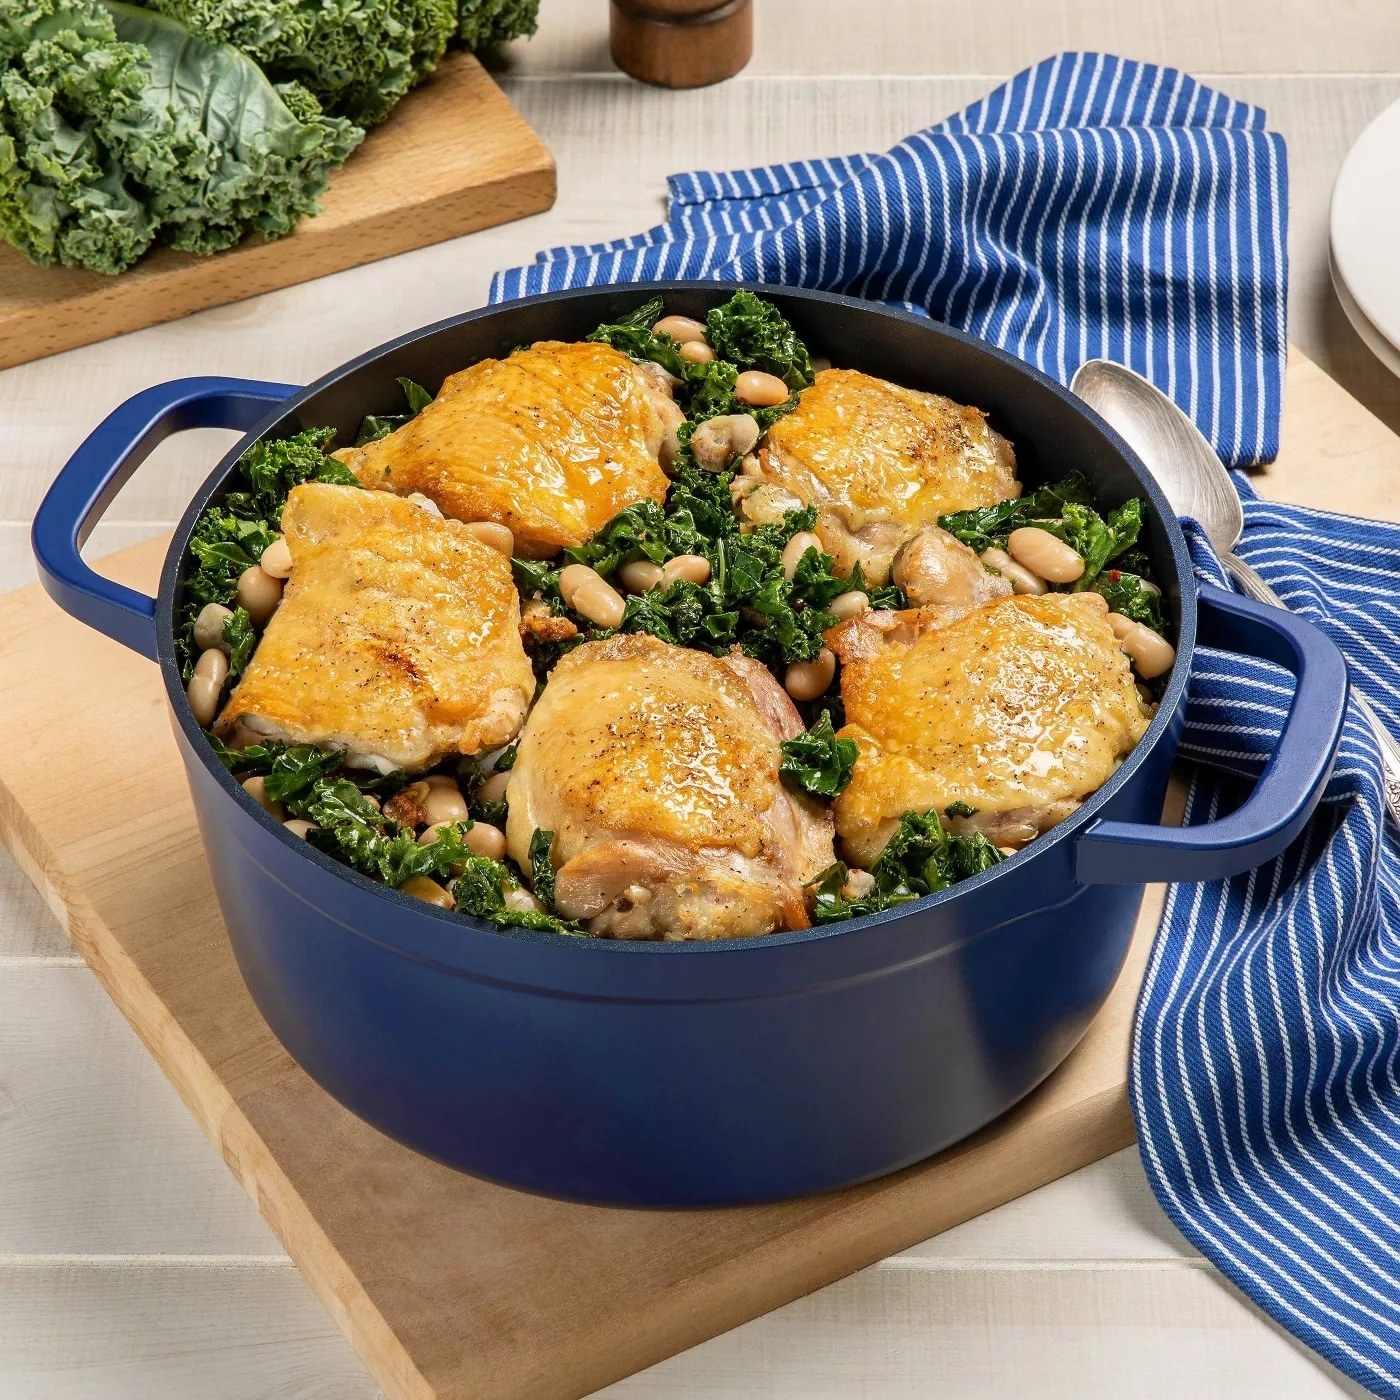 the dutch oven with chicken, greens, and beans inside